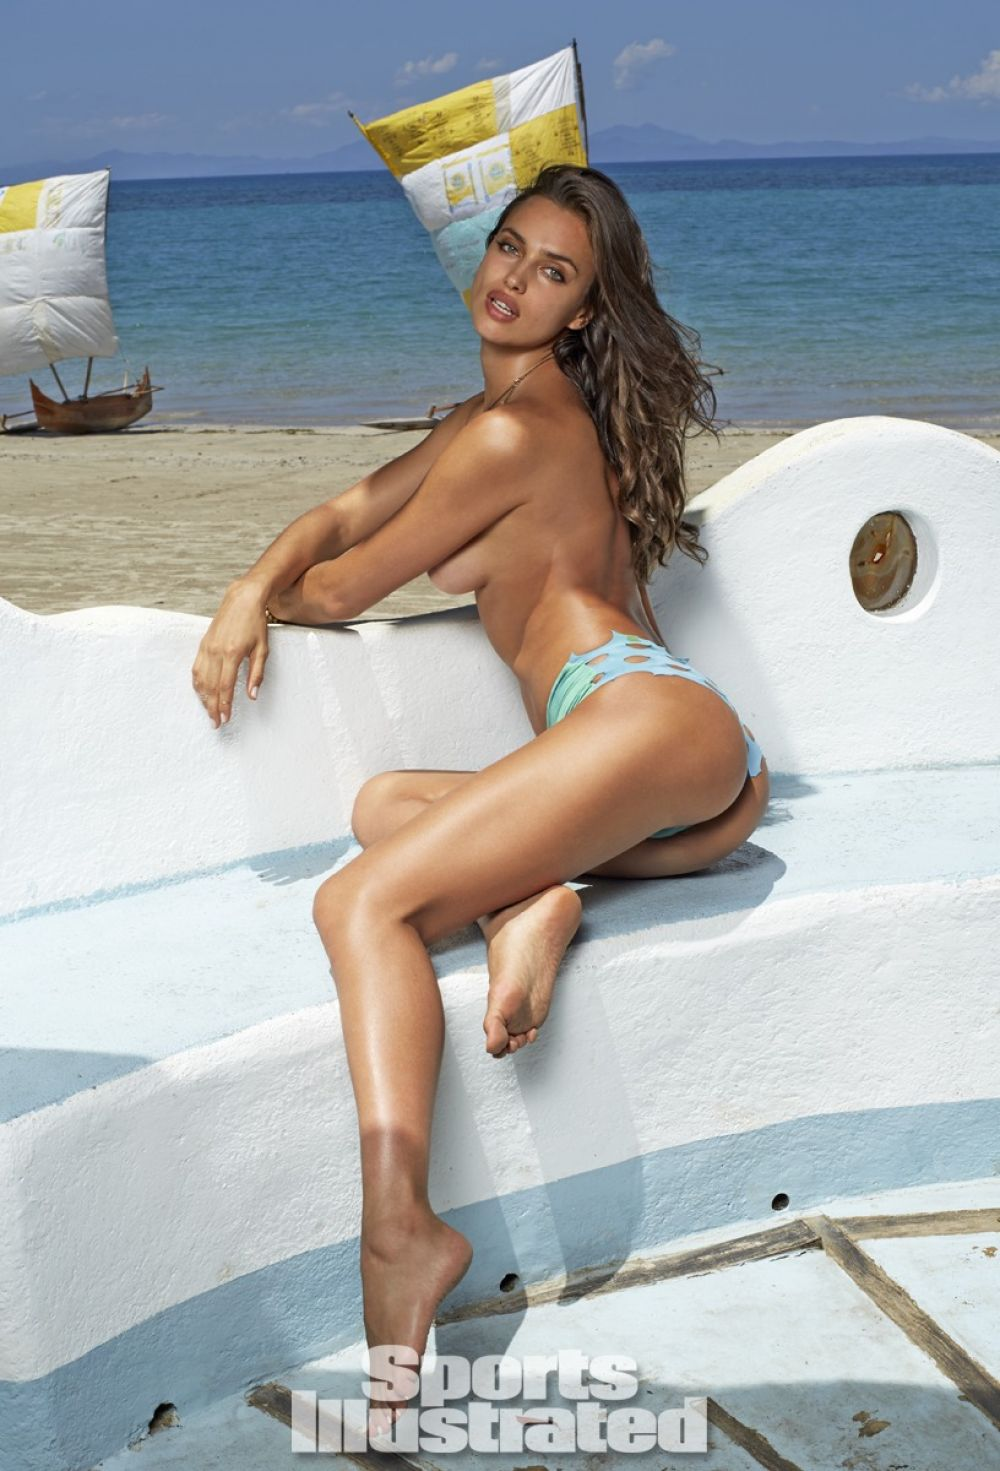 Irina Shayk Sports Illustrated 2014 Irina Shayk in Sports